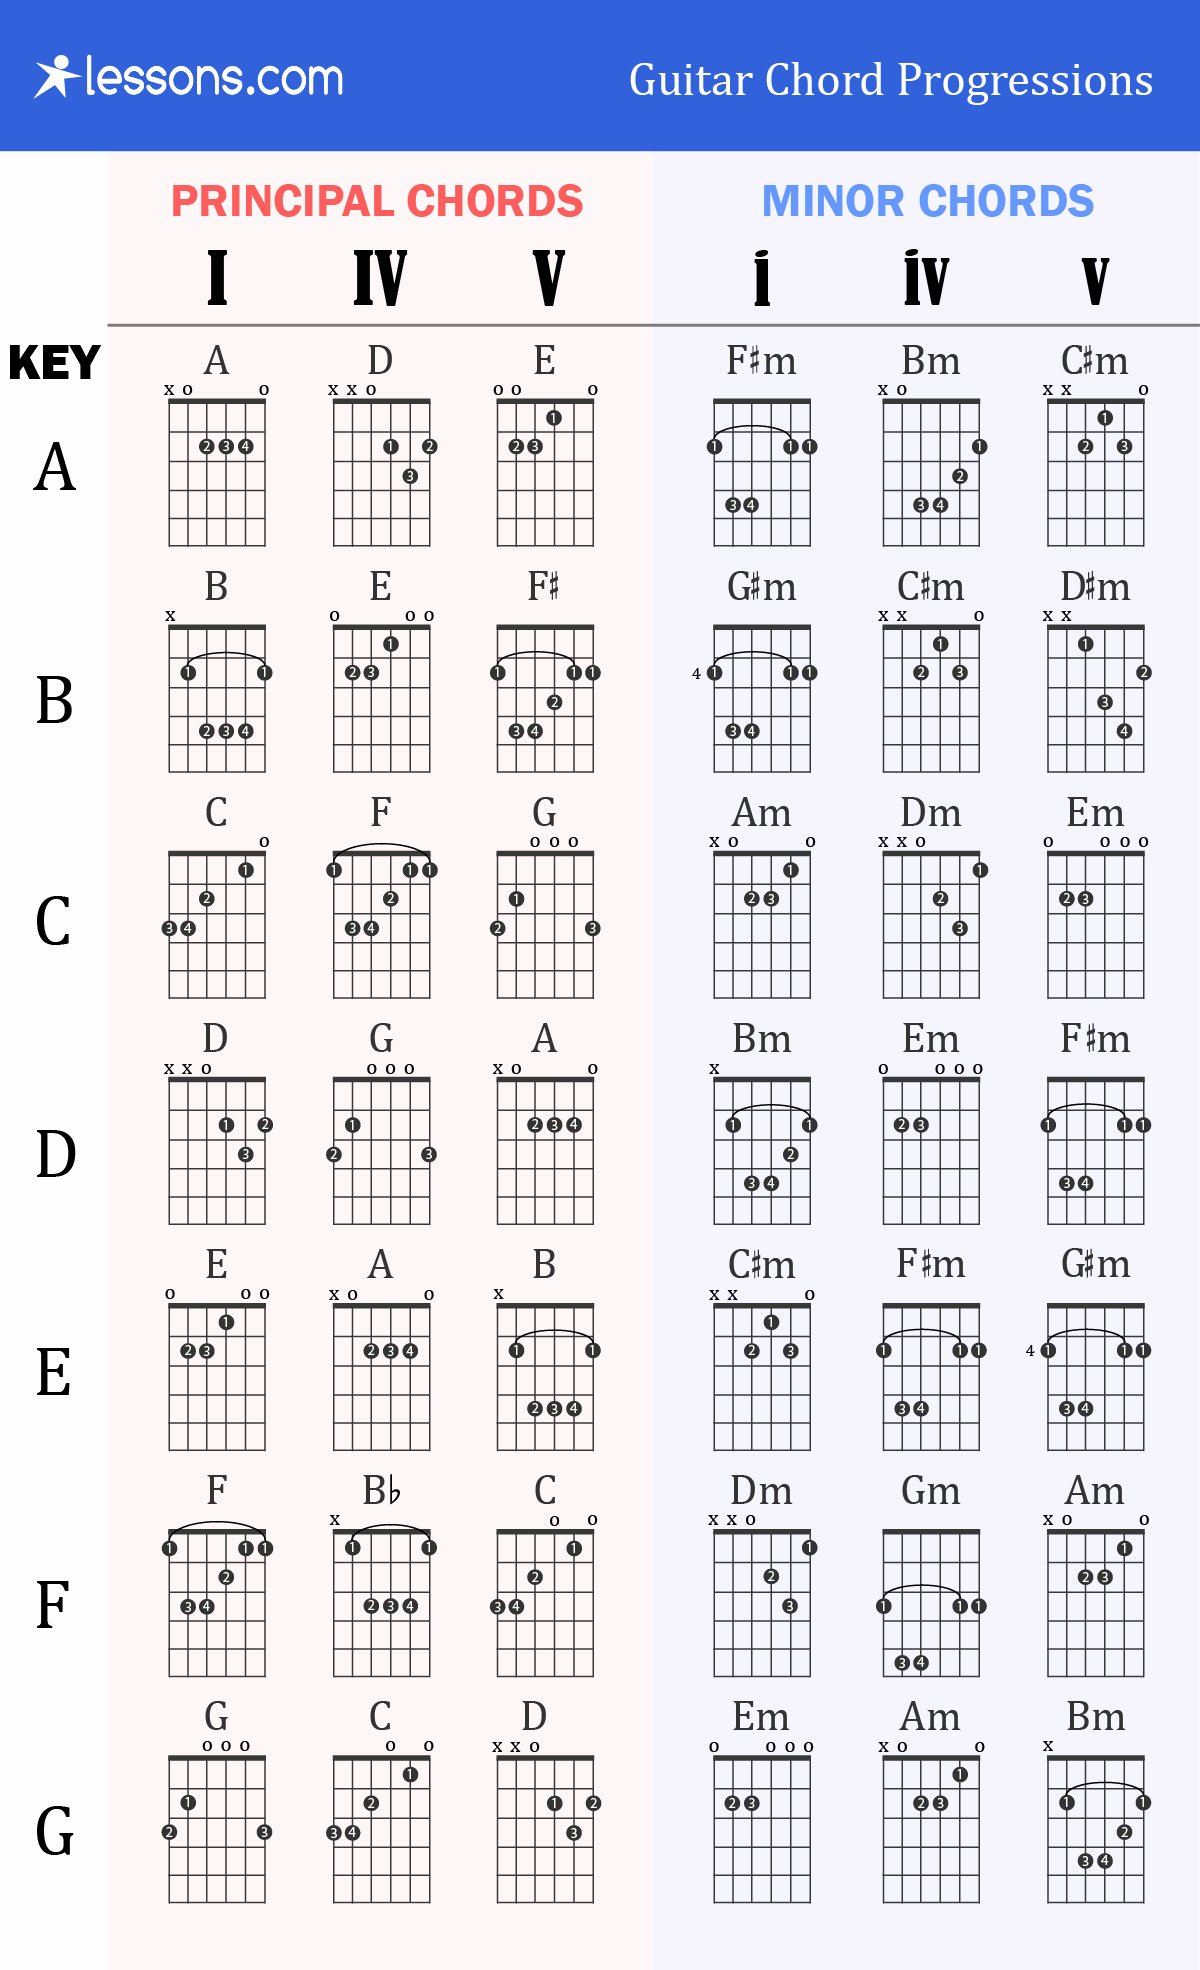 Guitar Chords Chart Basic Awesome the 3 Best Guitar Chord Progressions Charts & Examples